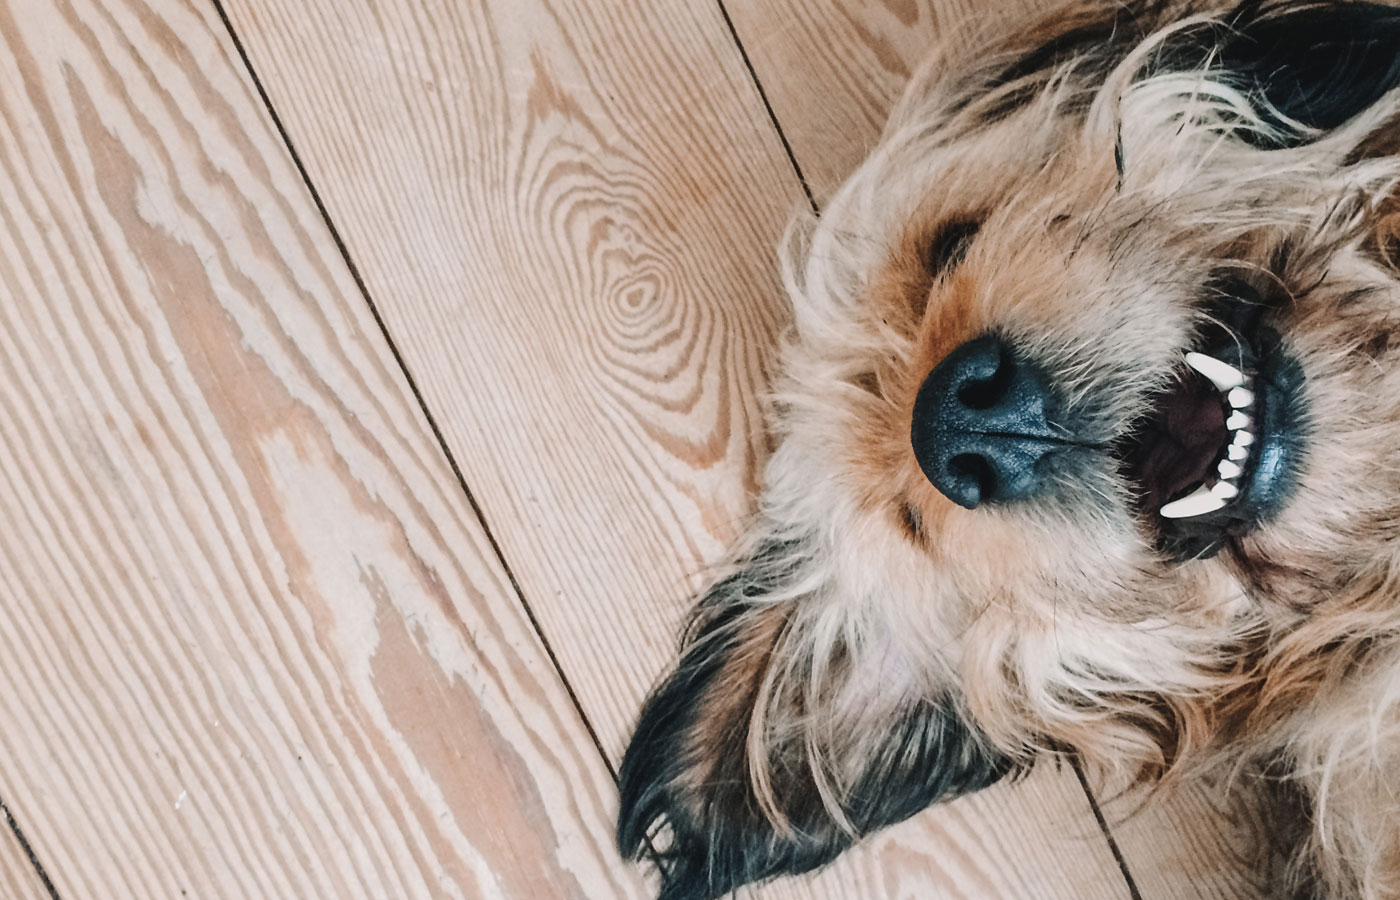 Cute dog smiling while lying on a wooden floor with its nose up showing white teeth